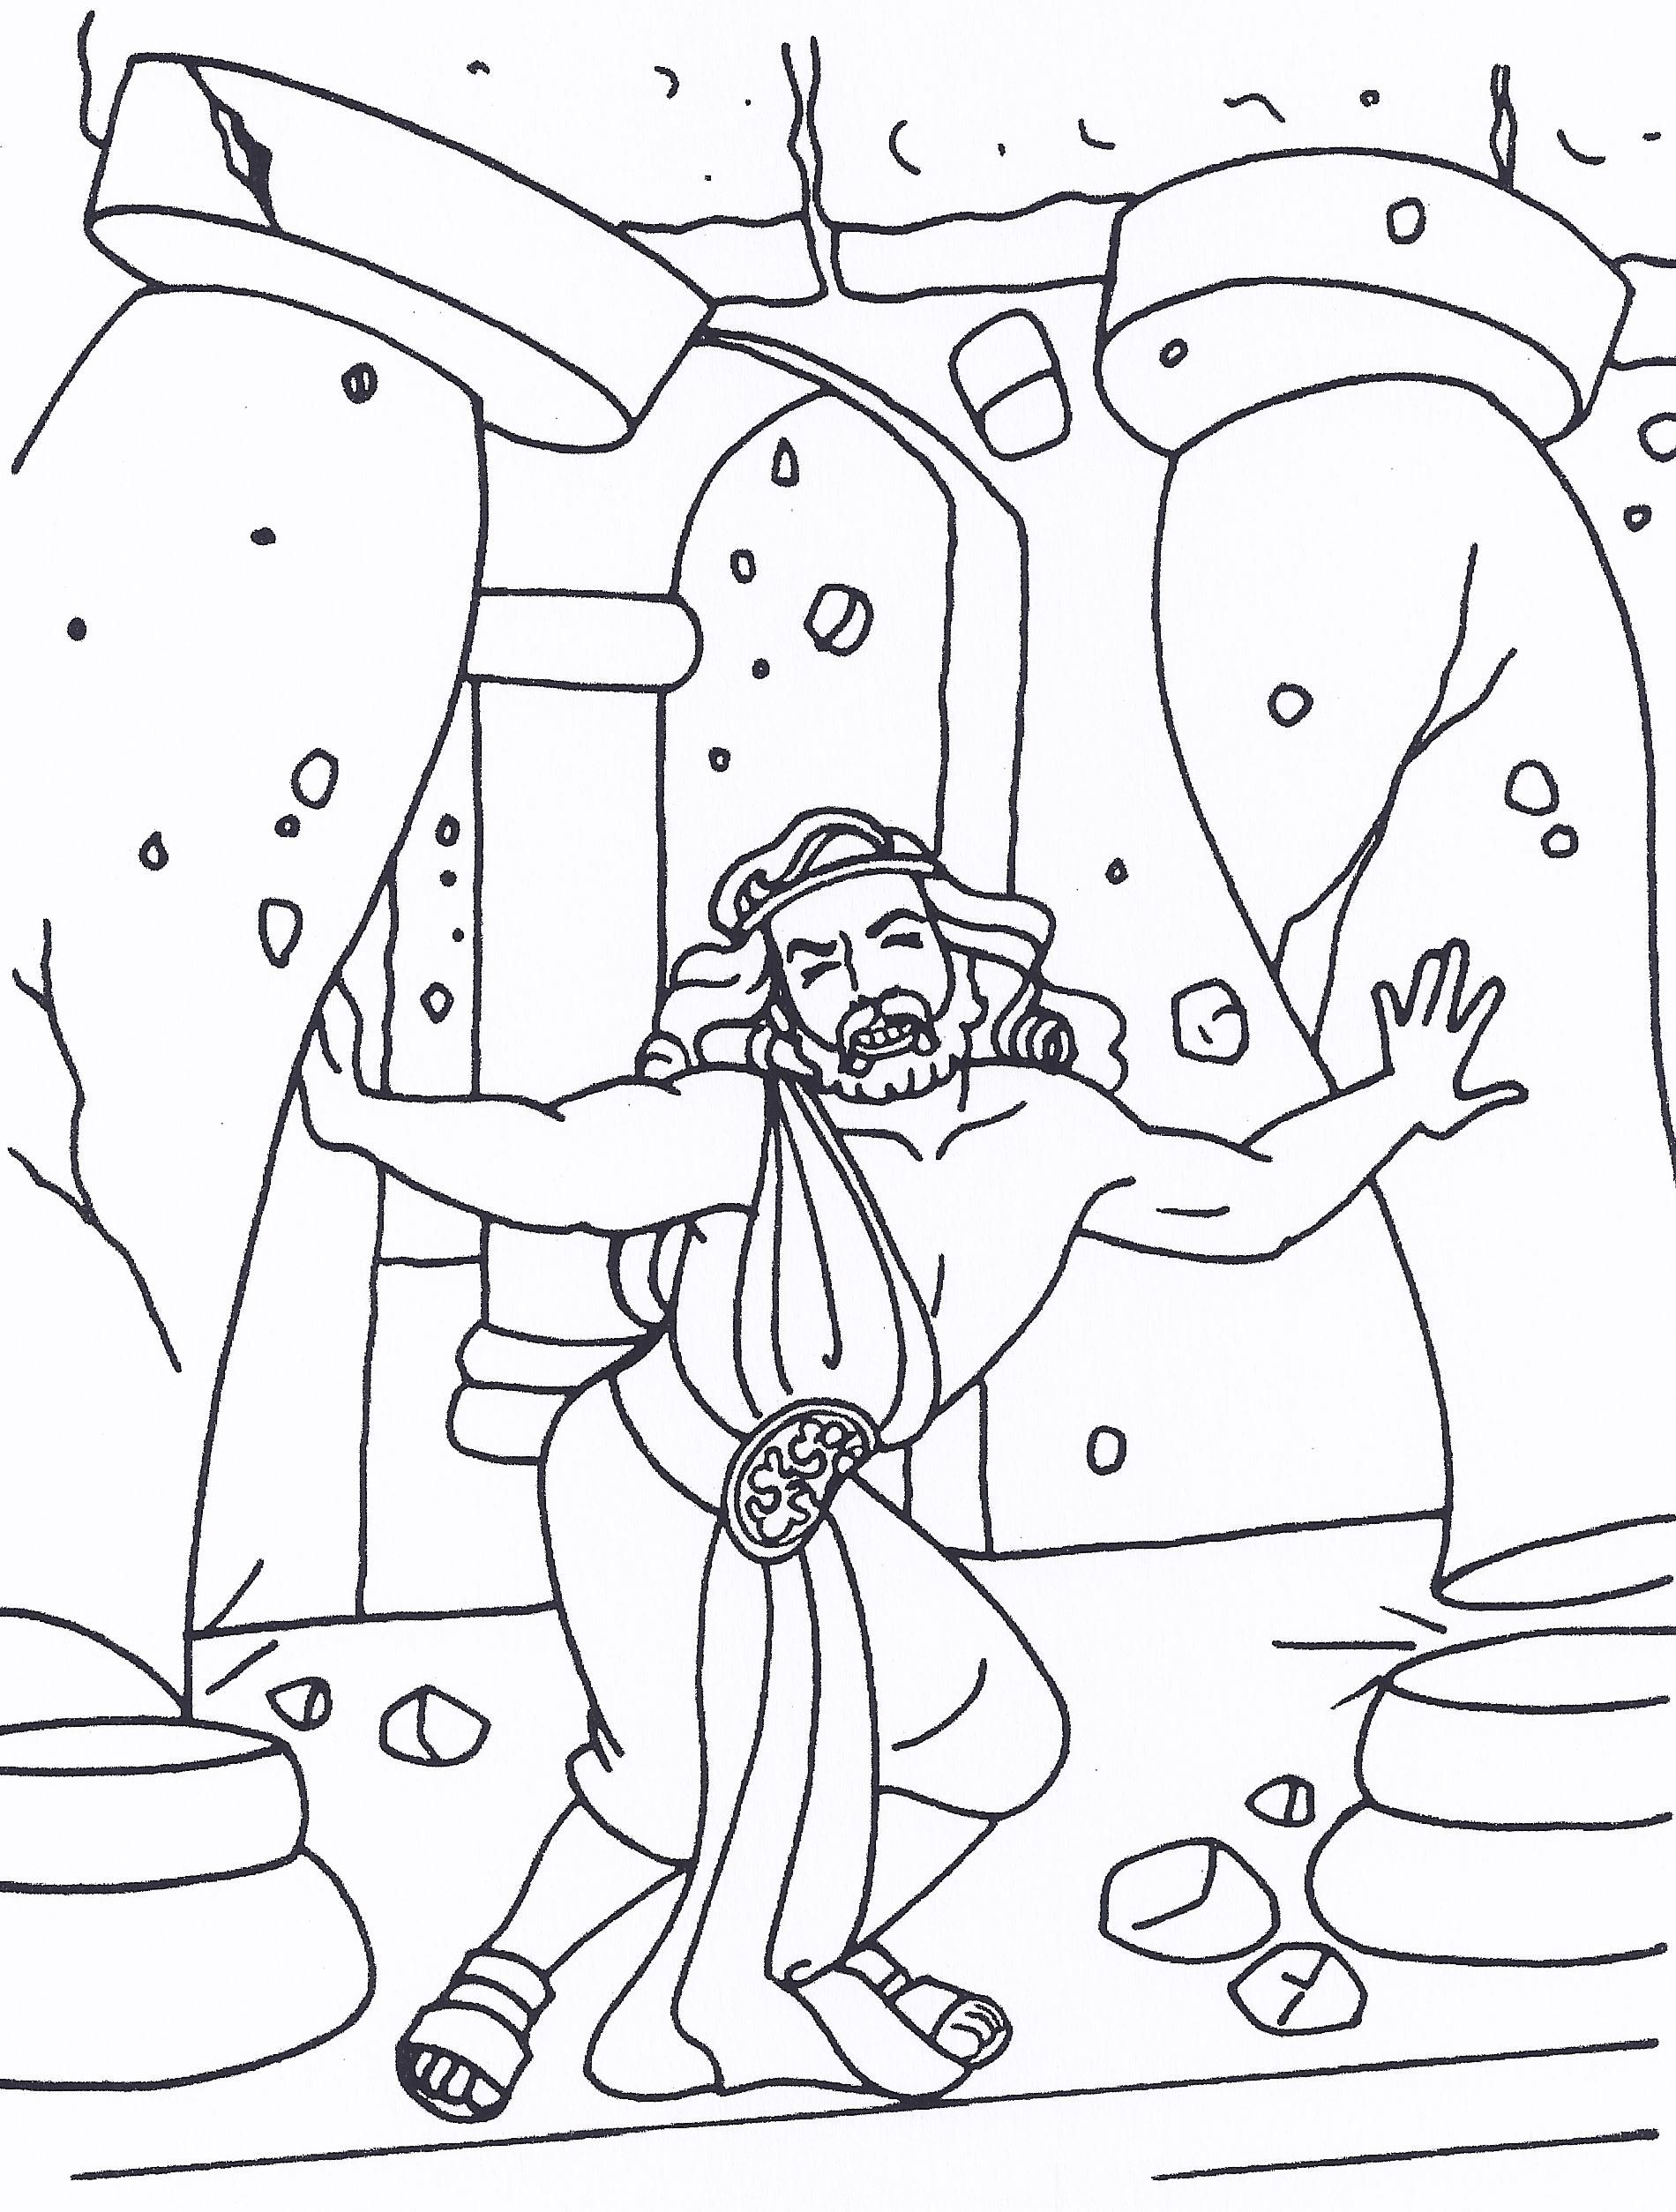 Samson bible characters pinterest sunday school for Samson bible coloring pages